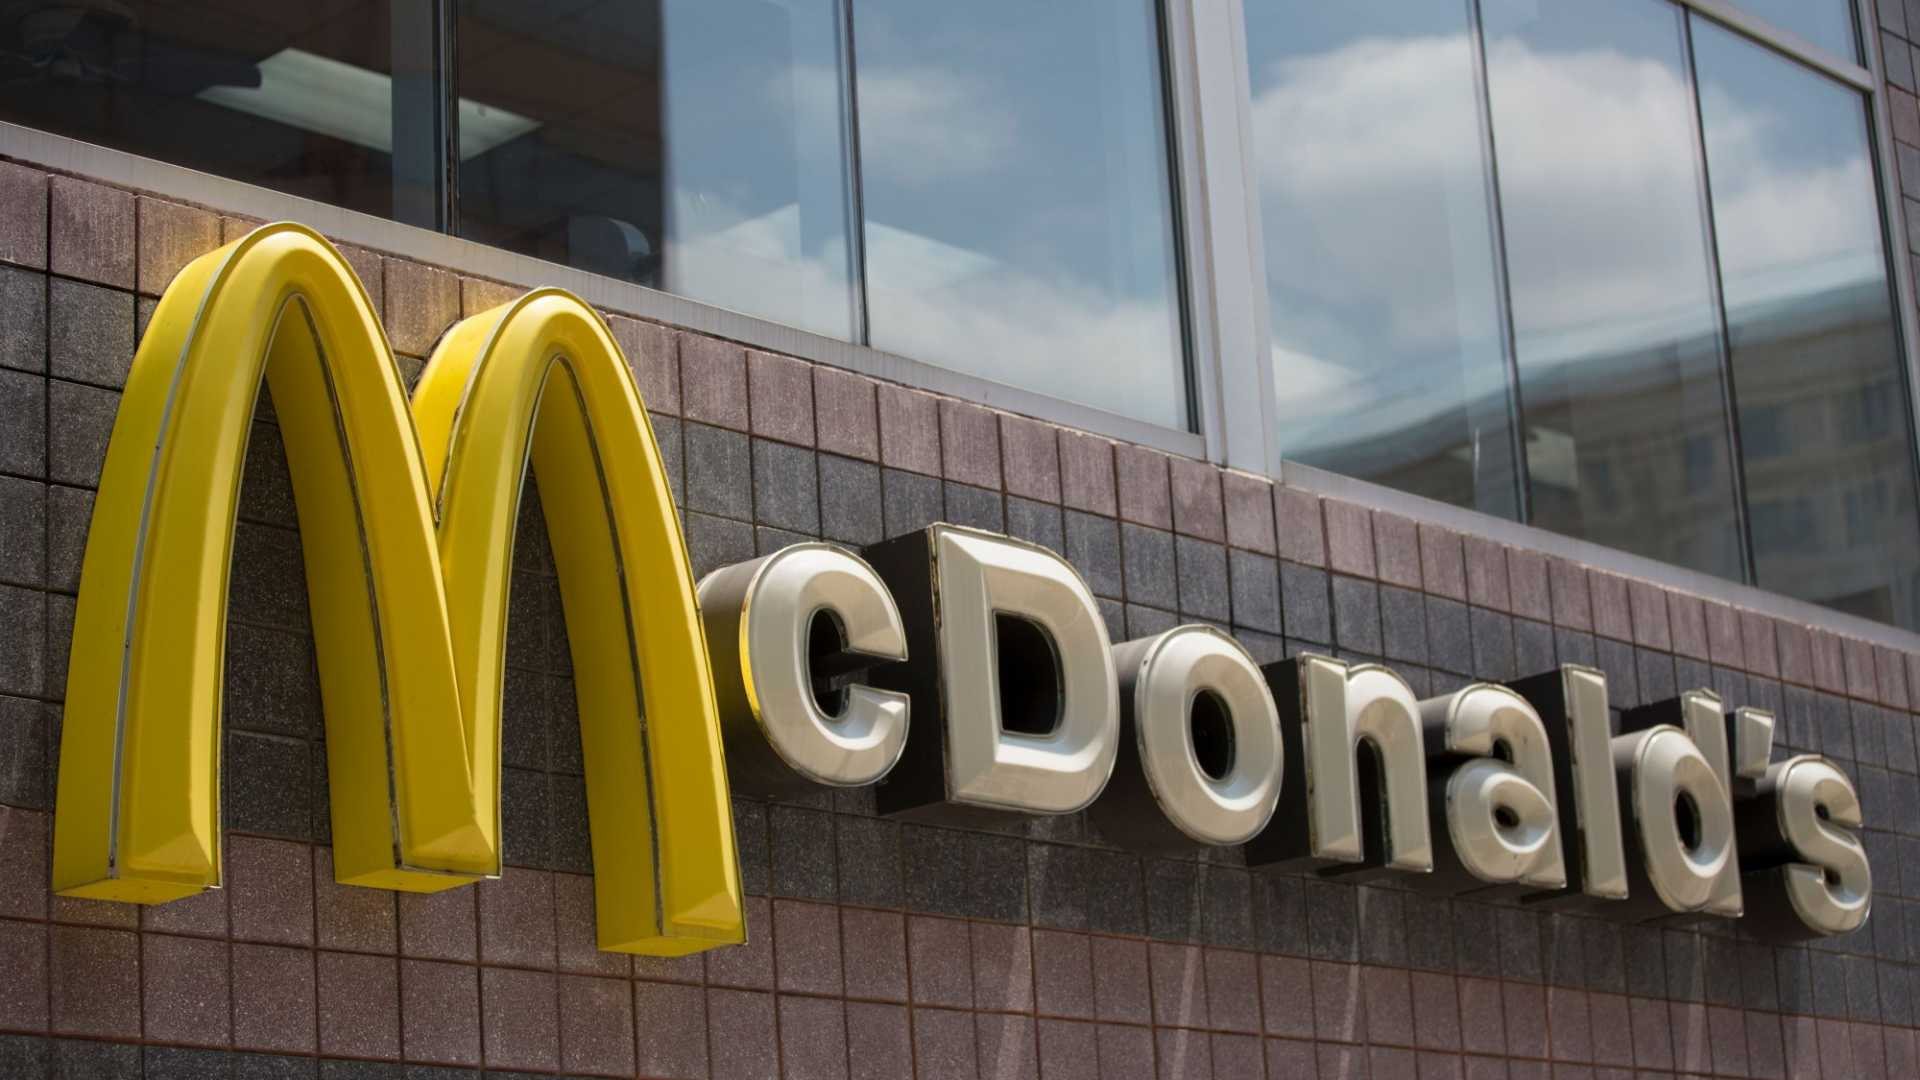 McDonald's Just Announced a Surprising Idea That Could Ultimately Mean Some Really Big Changes